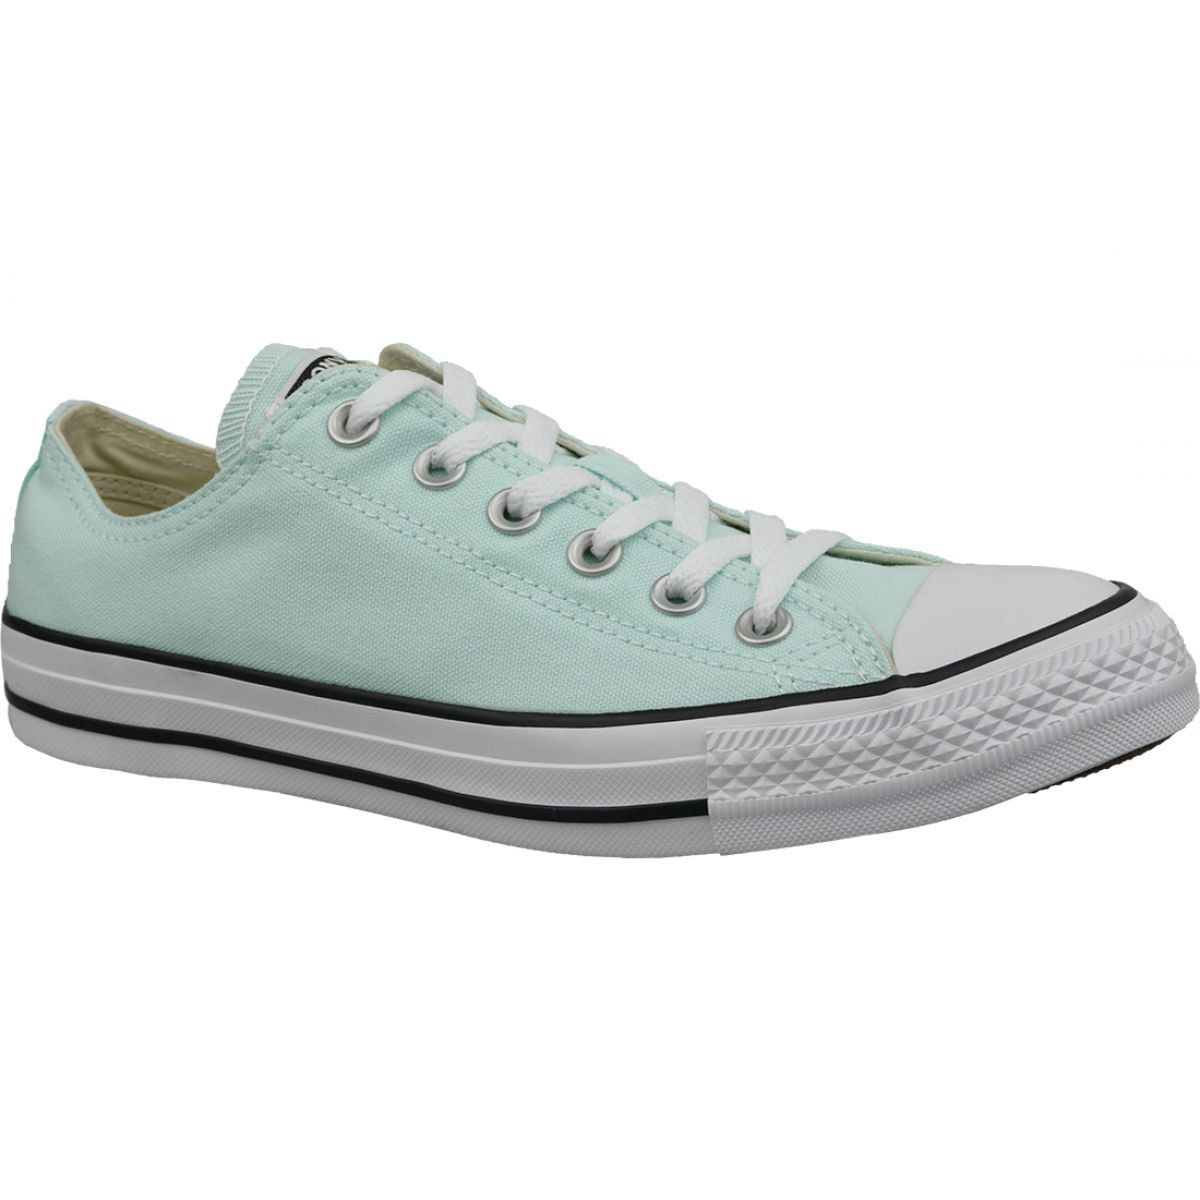 Buty Converse C Taylor All Star Ox Teal Tint W 163357c Niebieskie Converse Shoes Converse Shoes